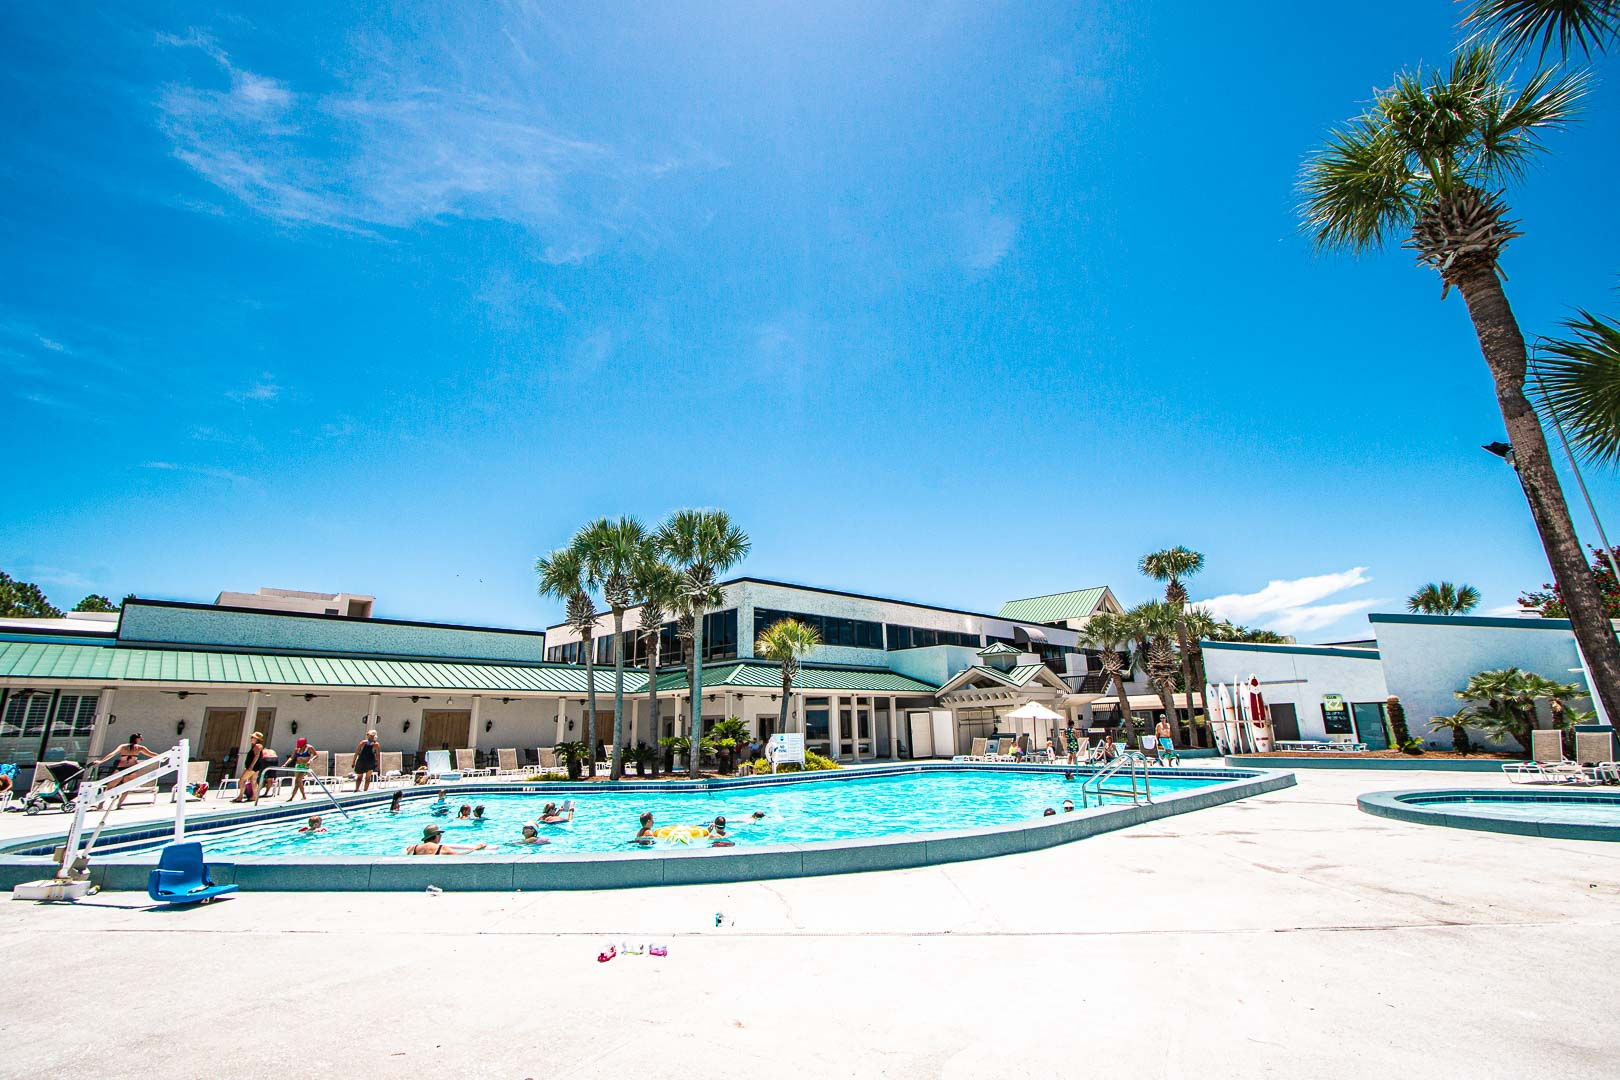 A scenic view of the outdoor swimming pool at VRI's Bay Club of Sandestin in Florida.